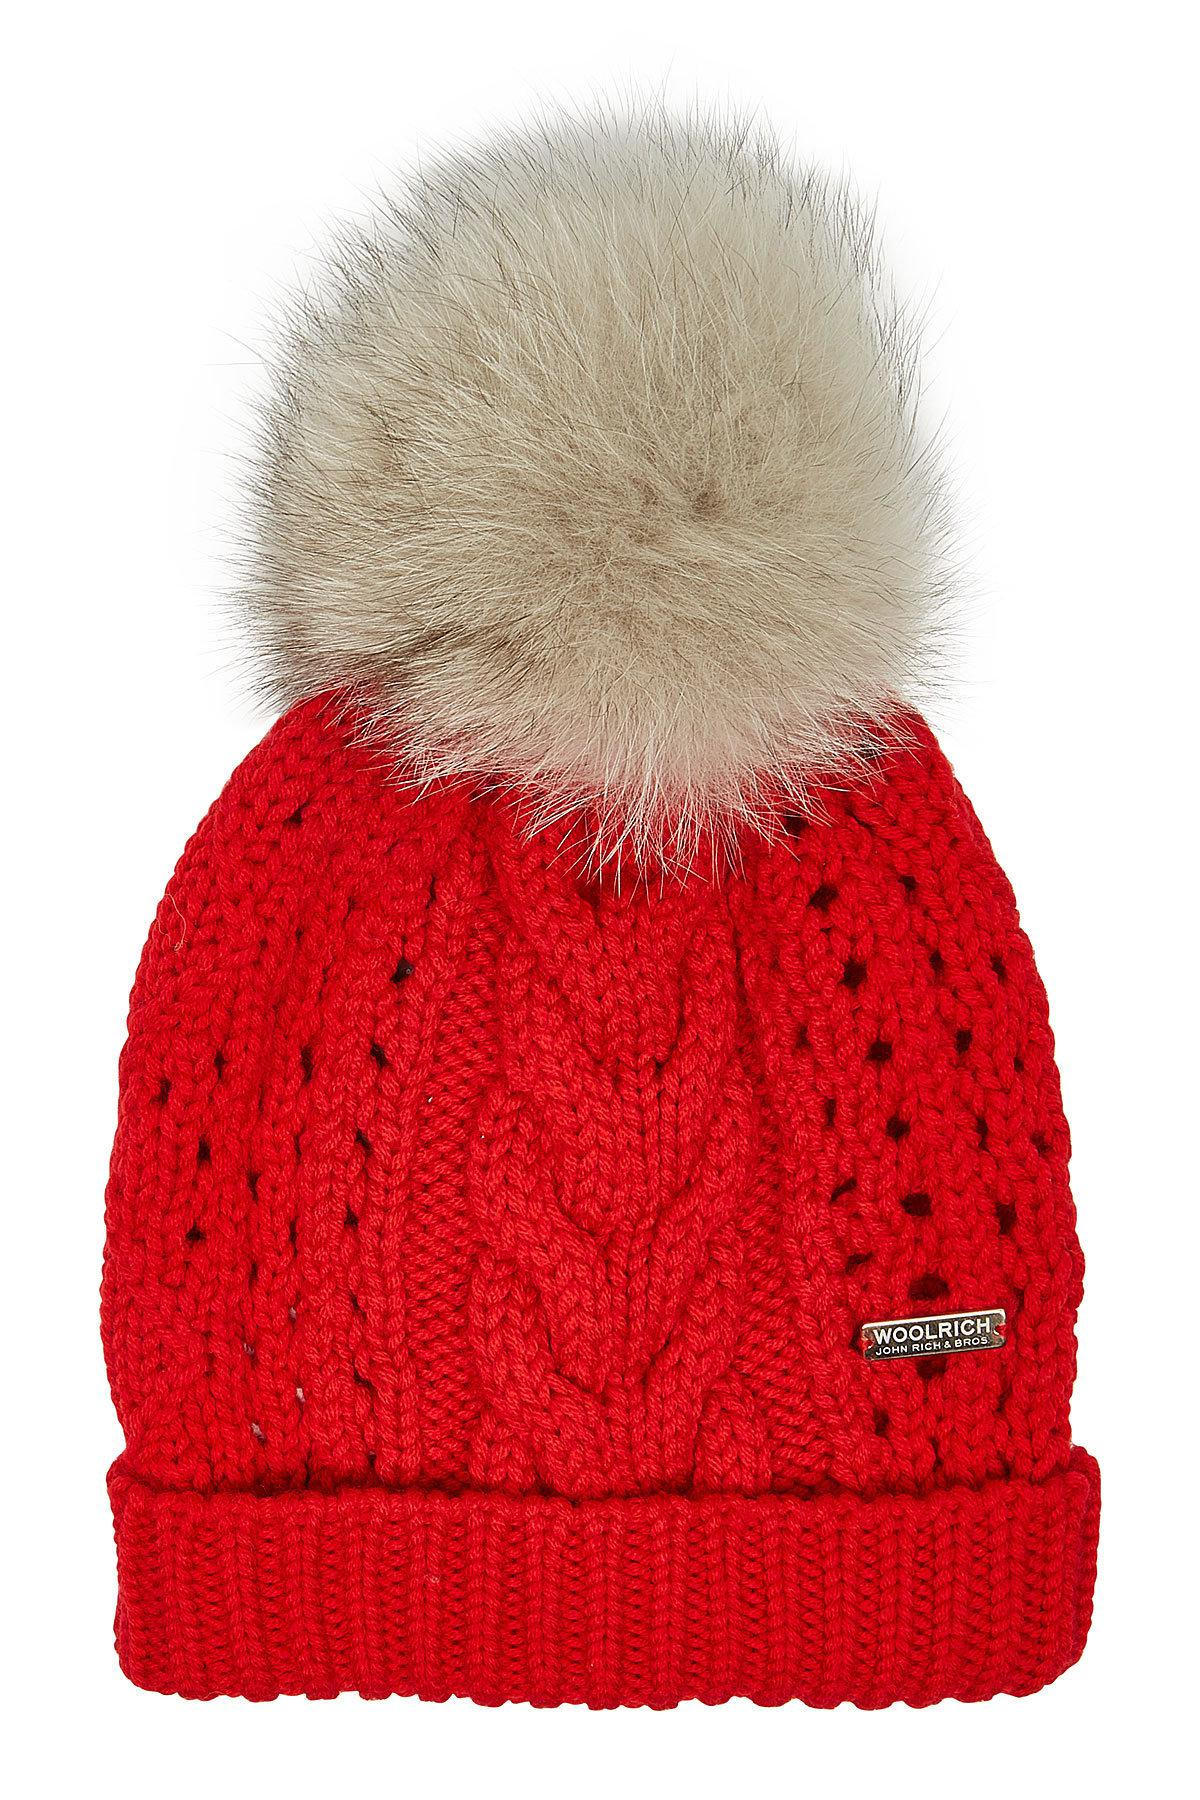 e1214eac58fab Woolrich Serenity Wool Hat With Fox Fur in Red - Lyst